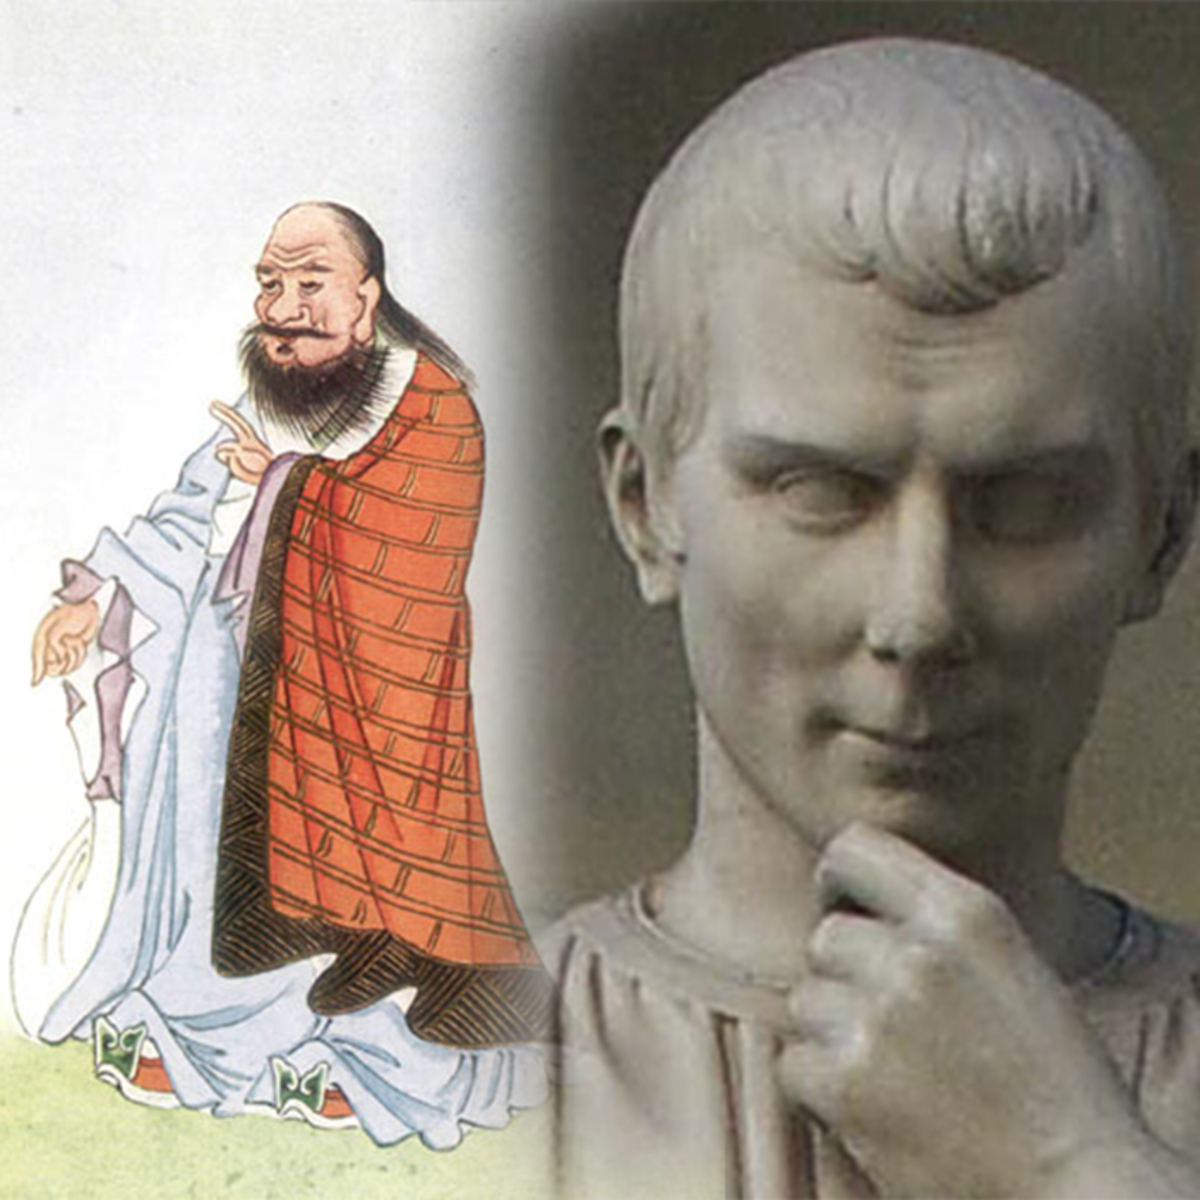 Lao-Tzu vs. Machiavelli: What Makes a Great Leader?